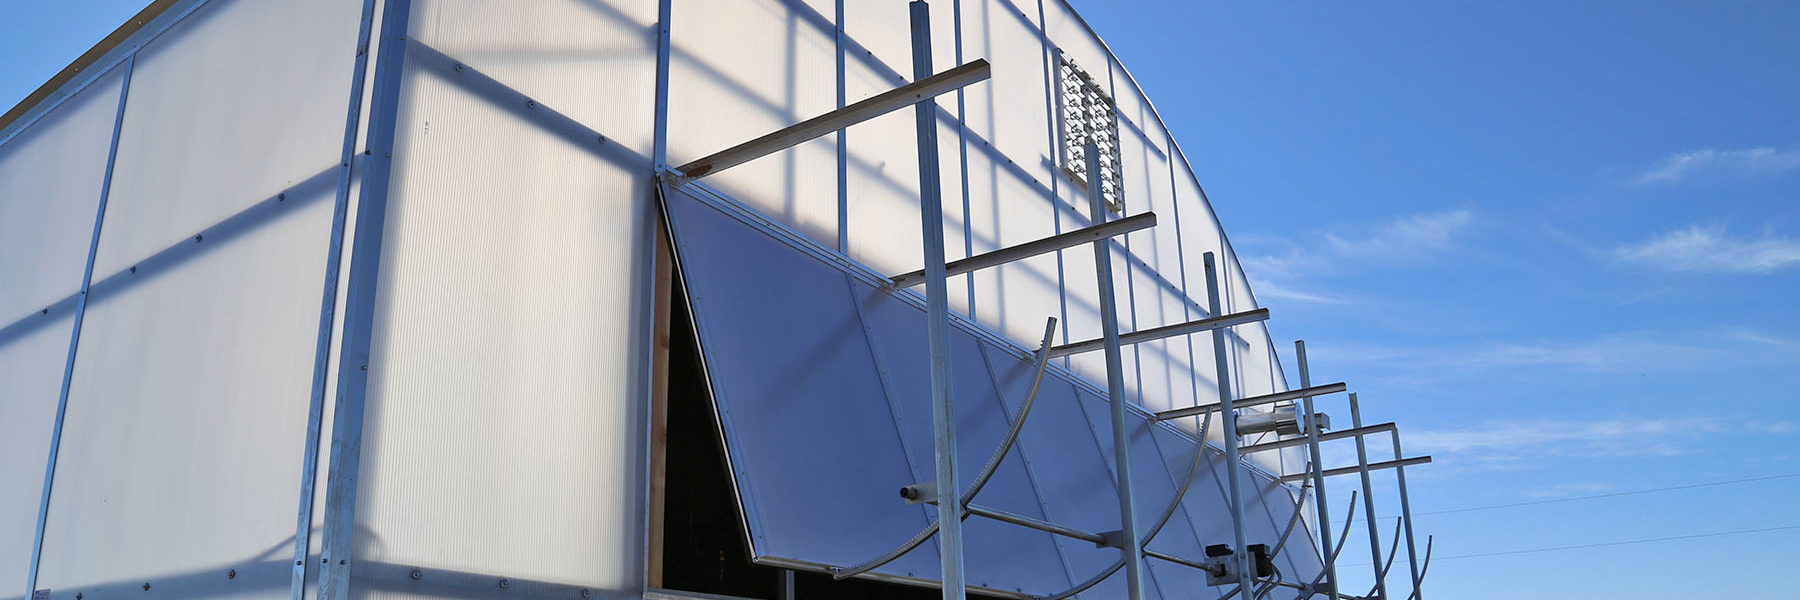 Evaporative cooling wall exterior